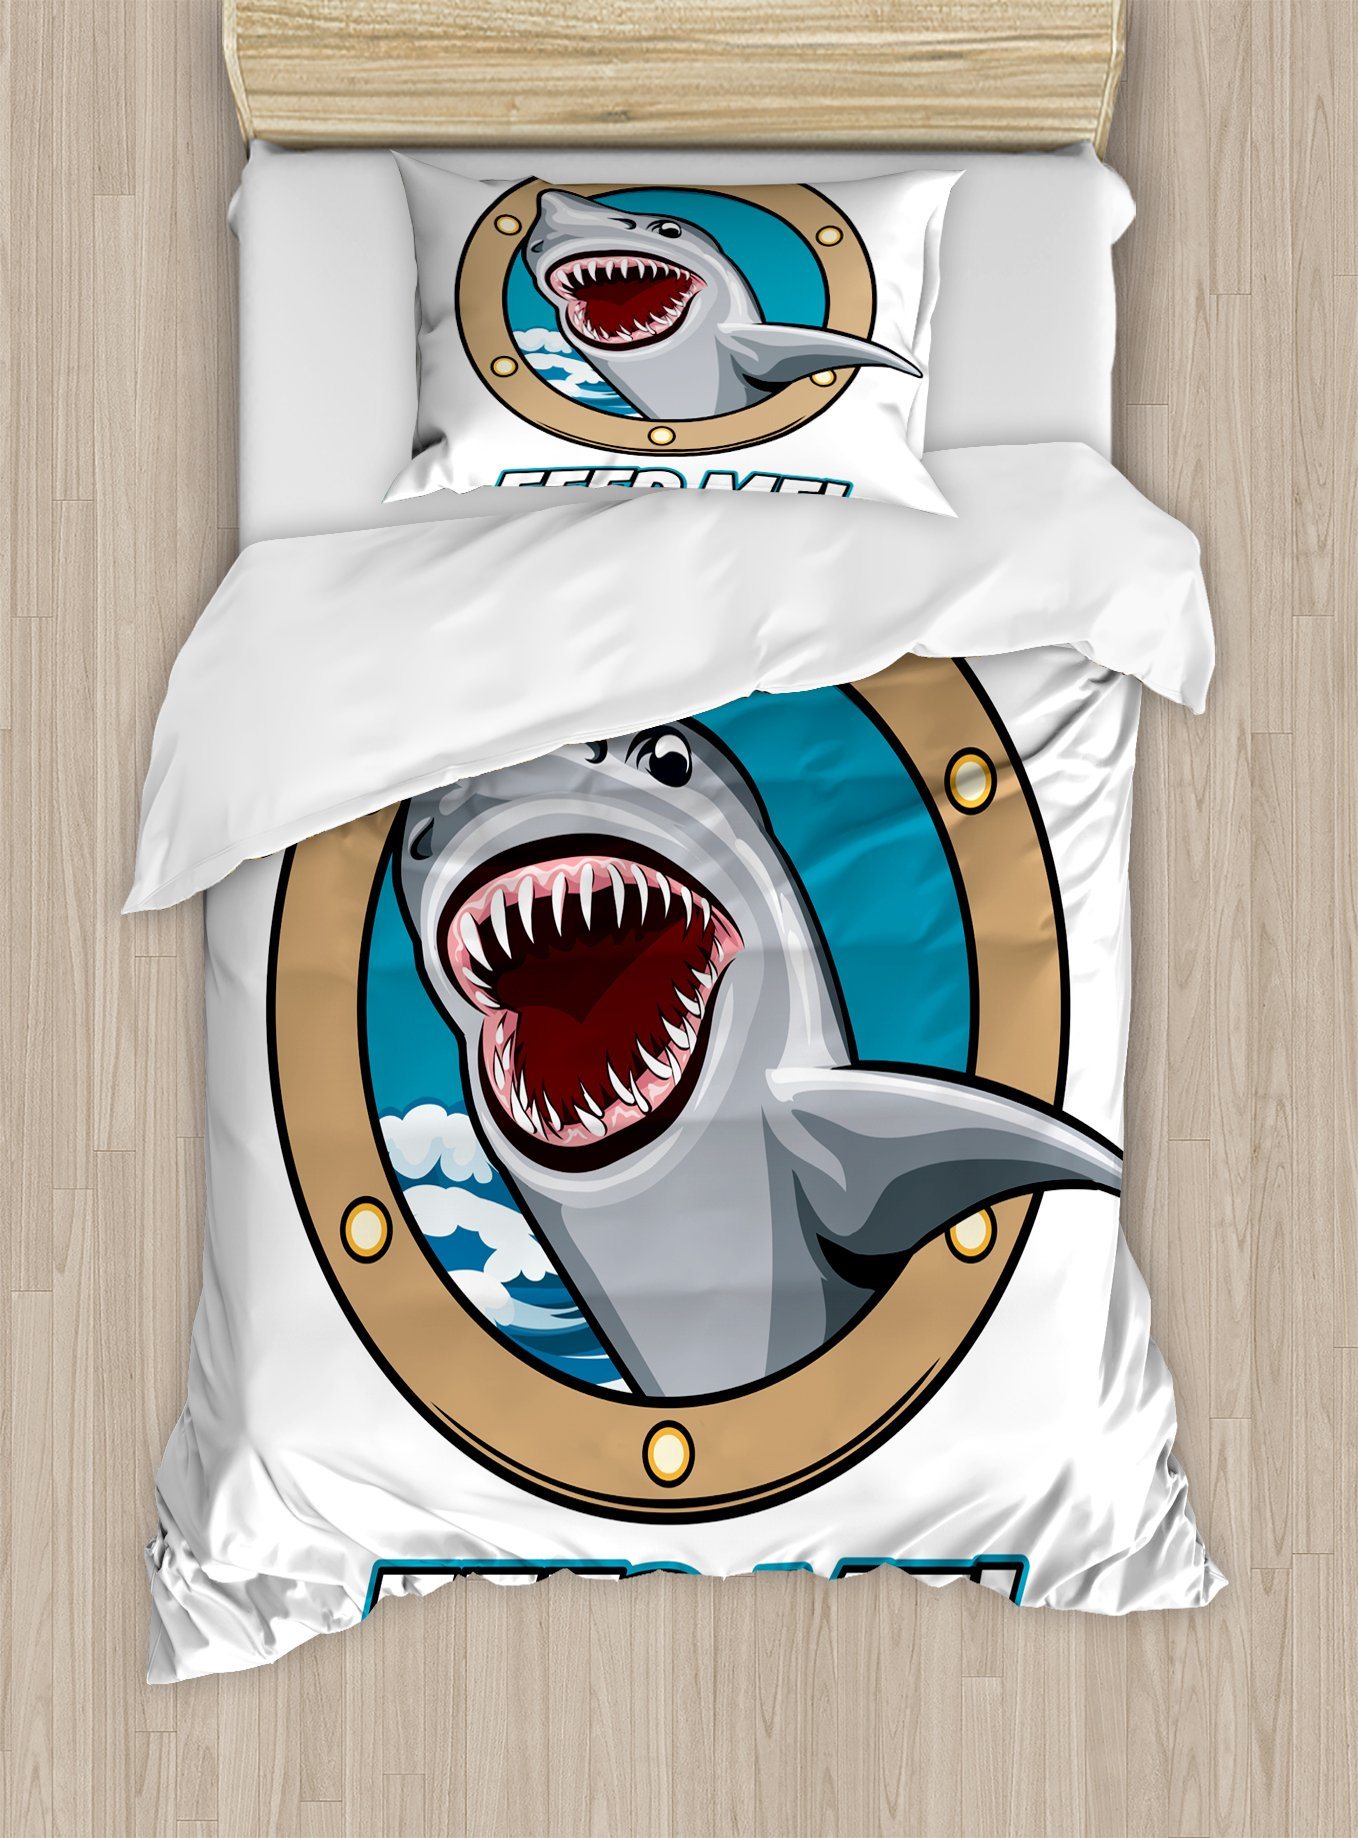 Ambesonne Shark Duvet Cover Set Twin Size, Funny Vintage Feed Me Quote with Hungry Hound Shark Head in Ship Window Humor Print, Decorative 2 Piece Bedding Set with 1 Pillow Sham, Multicolor